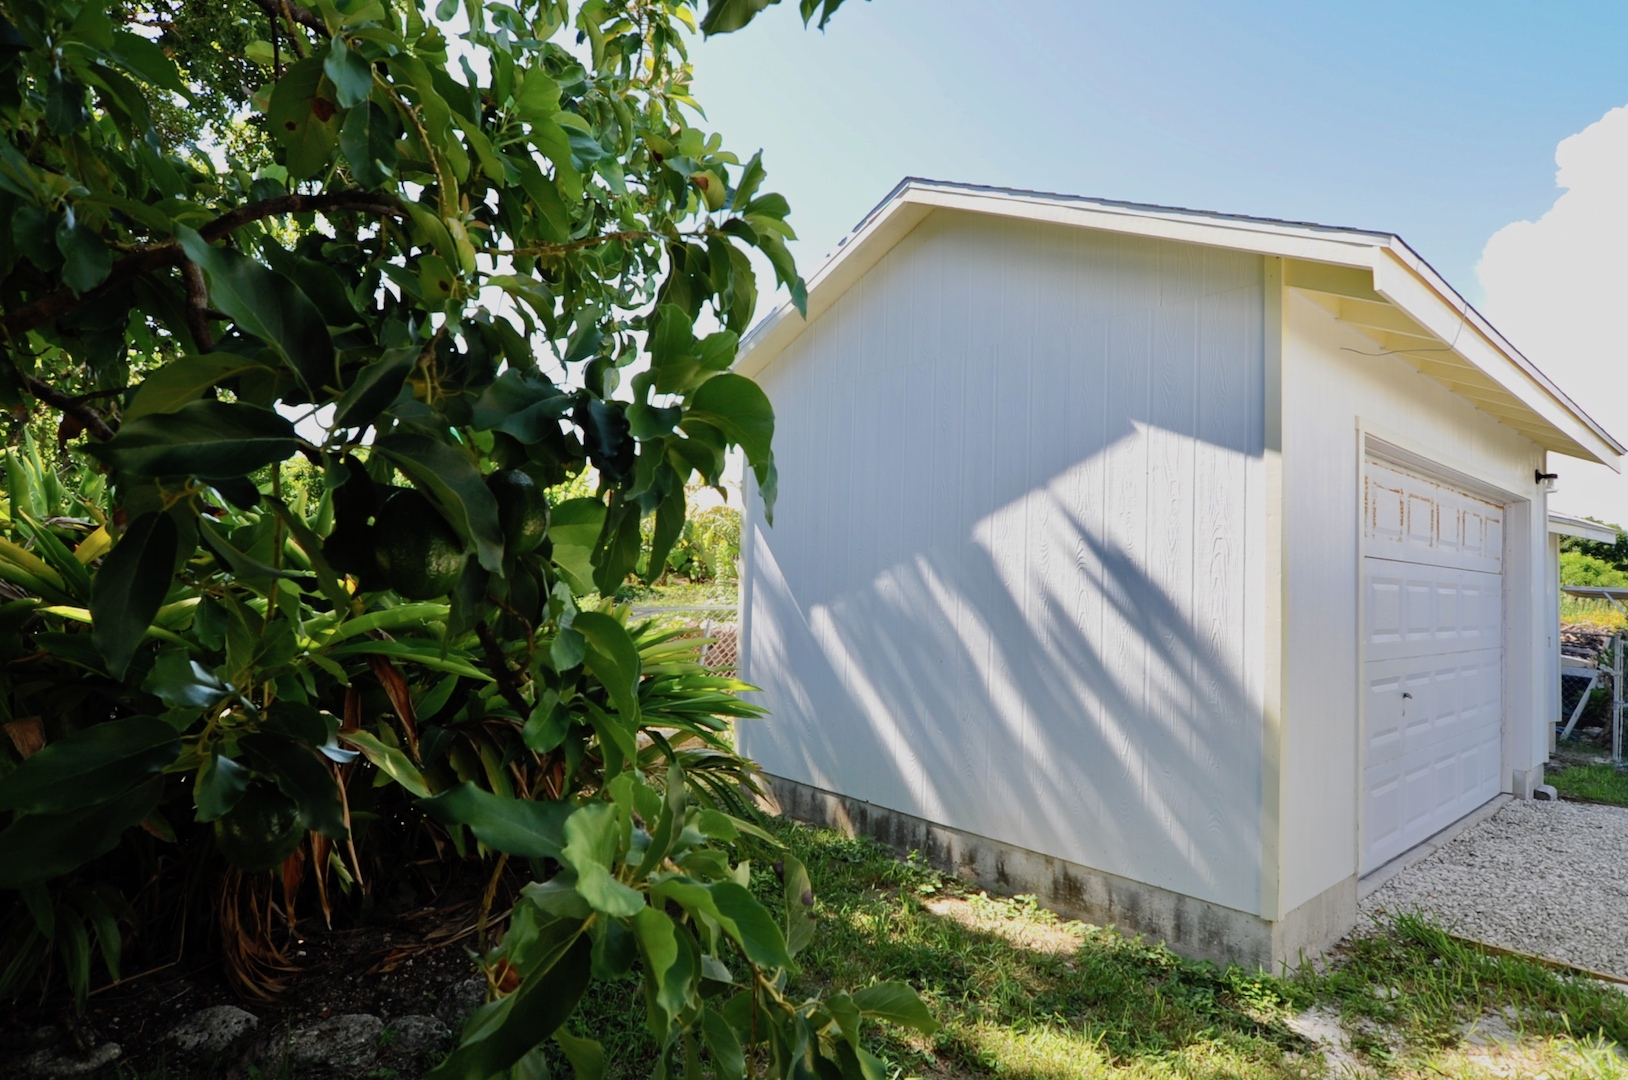 Home for sale in Man-O-War Cay Abaco with golf cart garage and mature fruit trees Avocado Sour Sop